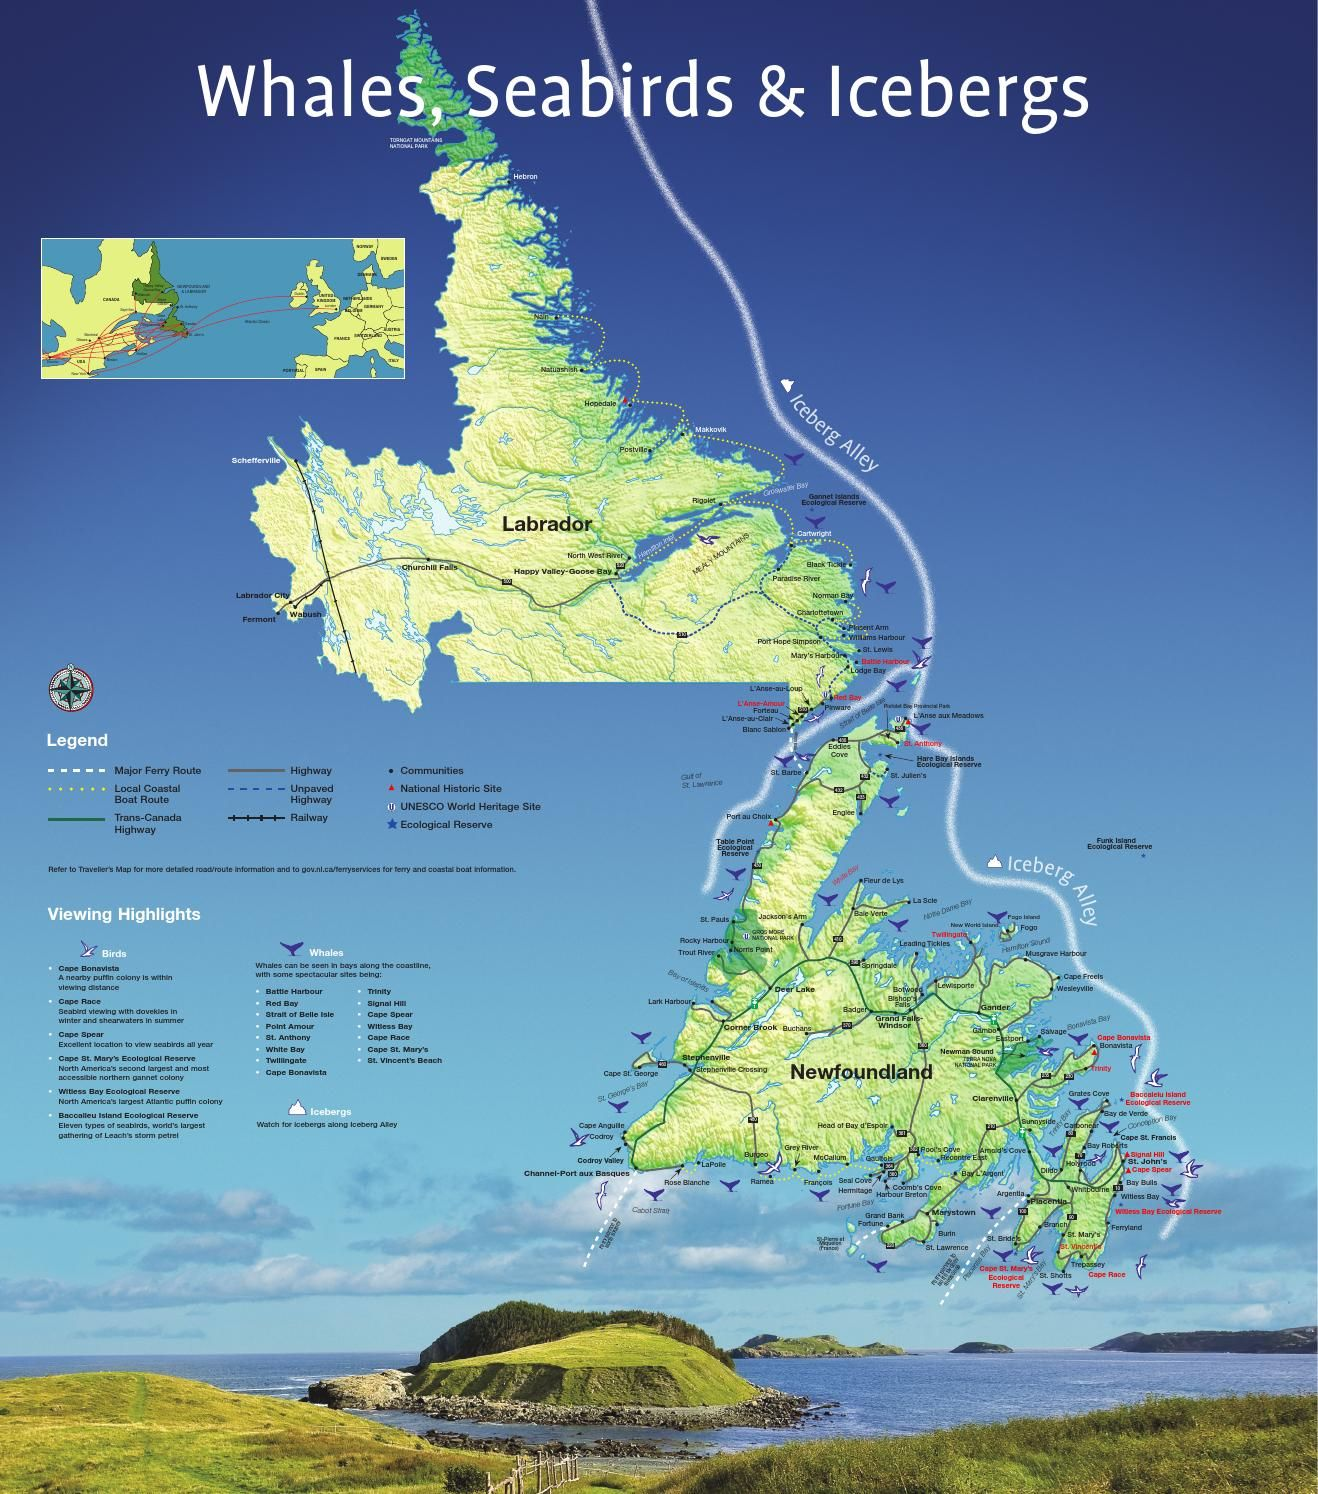 Whales birds and icebergs map labradors bird and newfoundland a map of popular places to see whales birds and icebergs in newfoundland and labrador gumiabroncs Images